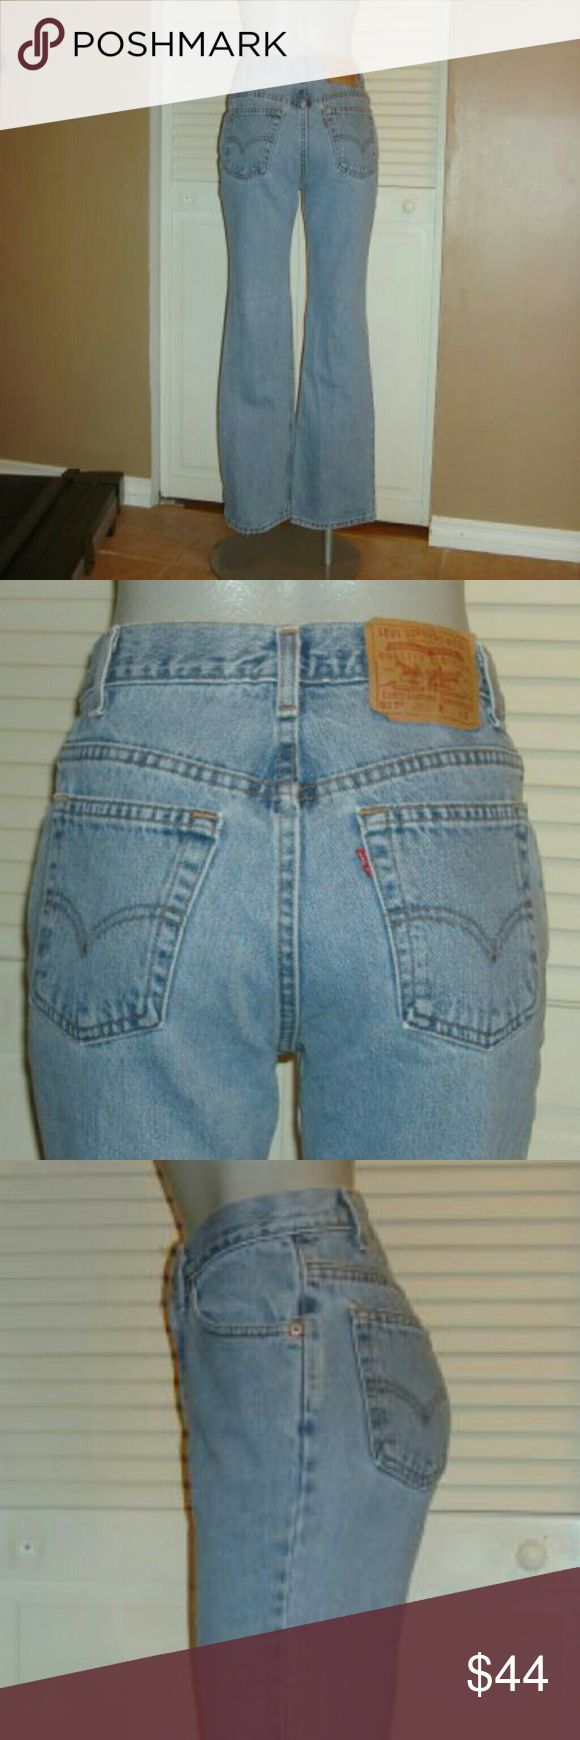 """Vintage Levis 517 Blue Slim Fit Boot Cut Jeans This pair of Vintage Levi's 517 blue denim flare jeans are 29"""" around the waist, 36"""" around the hips, have a 10 1/2"""" rise and a 30 1/2"""" inseam. Levi's Jeans Flare & Wide Leg"""